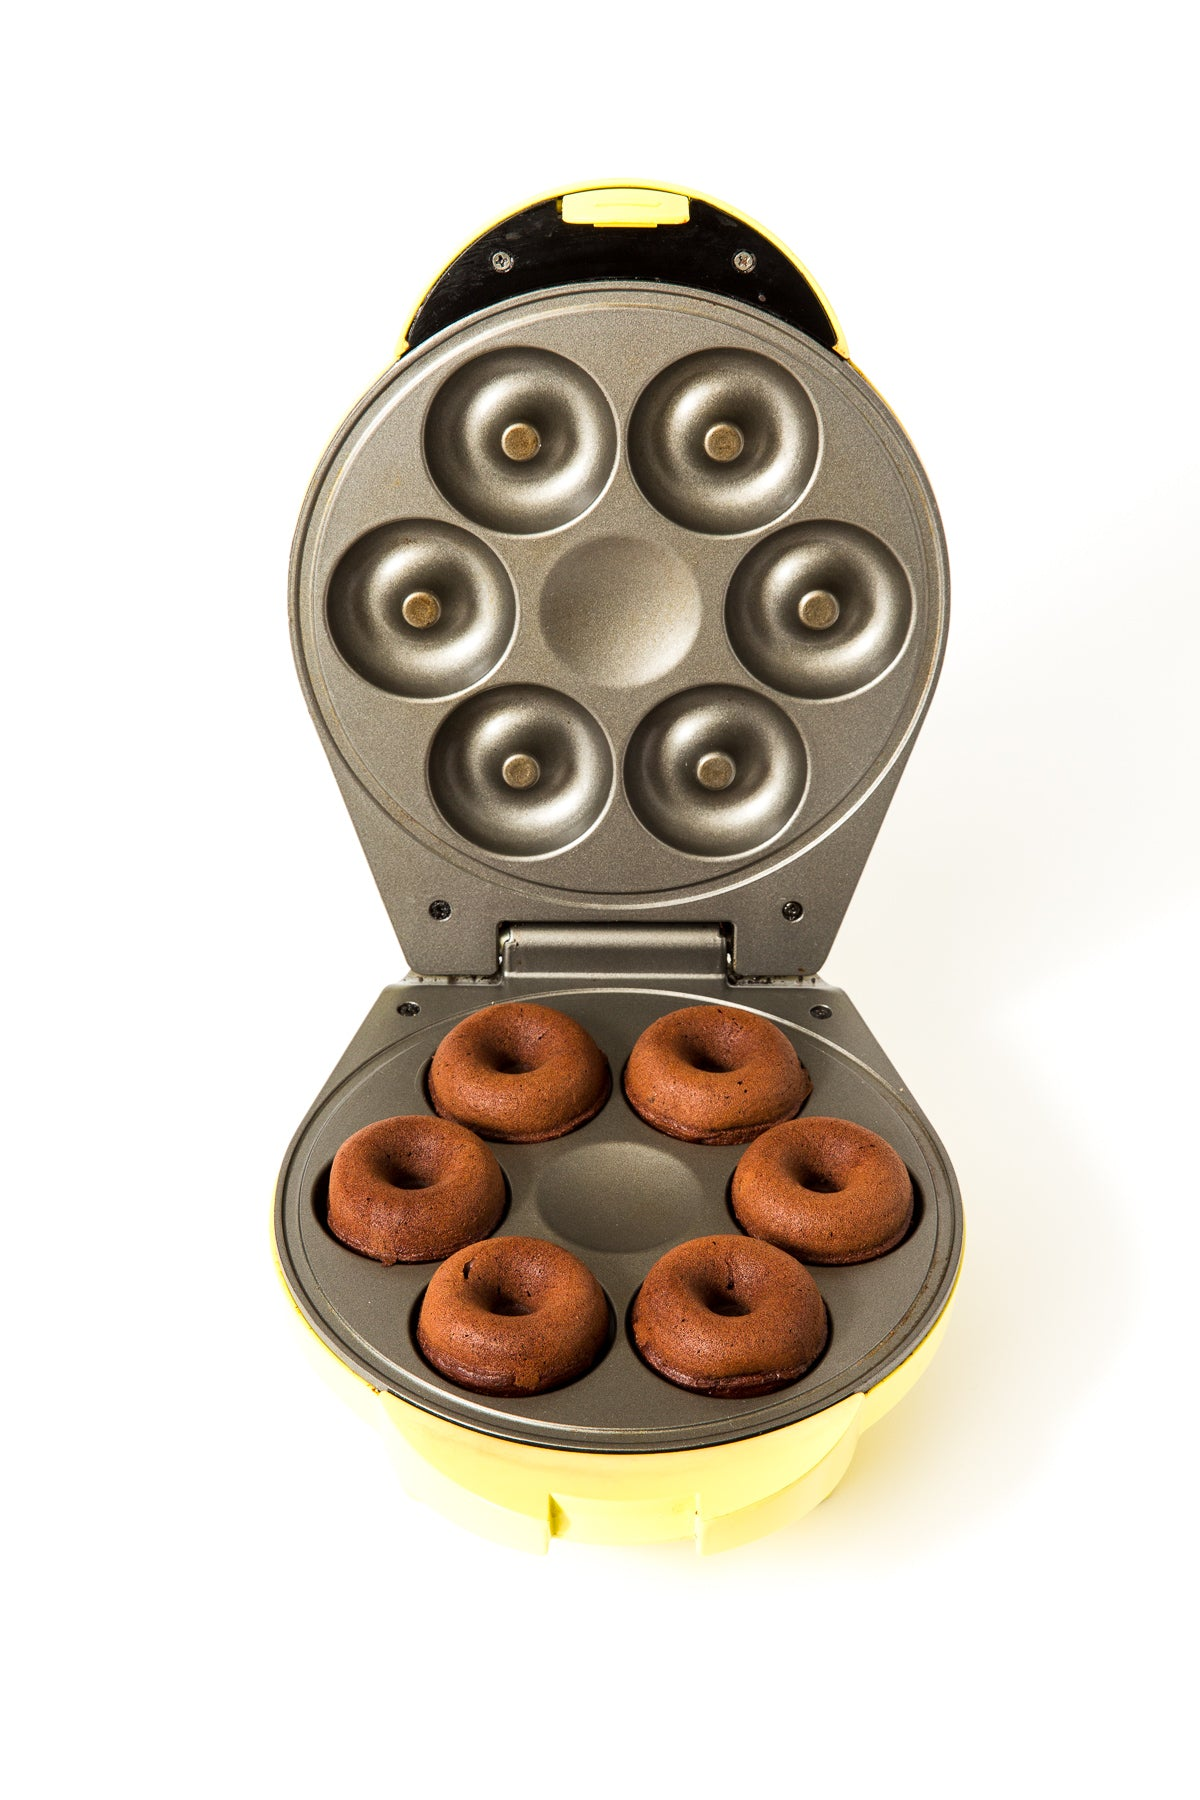 Image of six Miss Jones Baking Co Guinness Glazed Chocolate Donuts in a donut maker mold